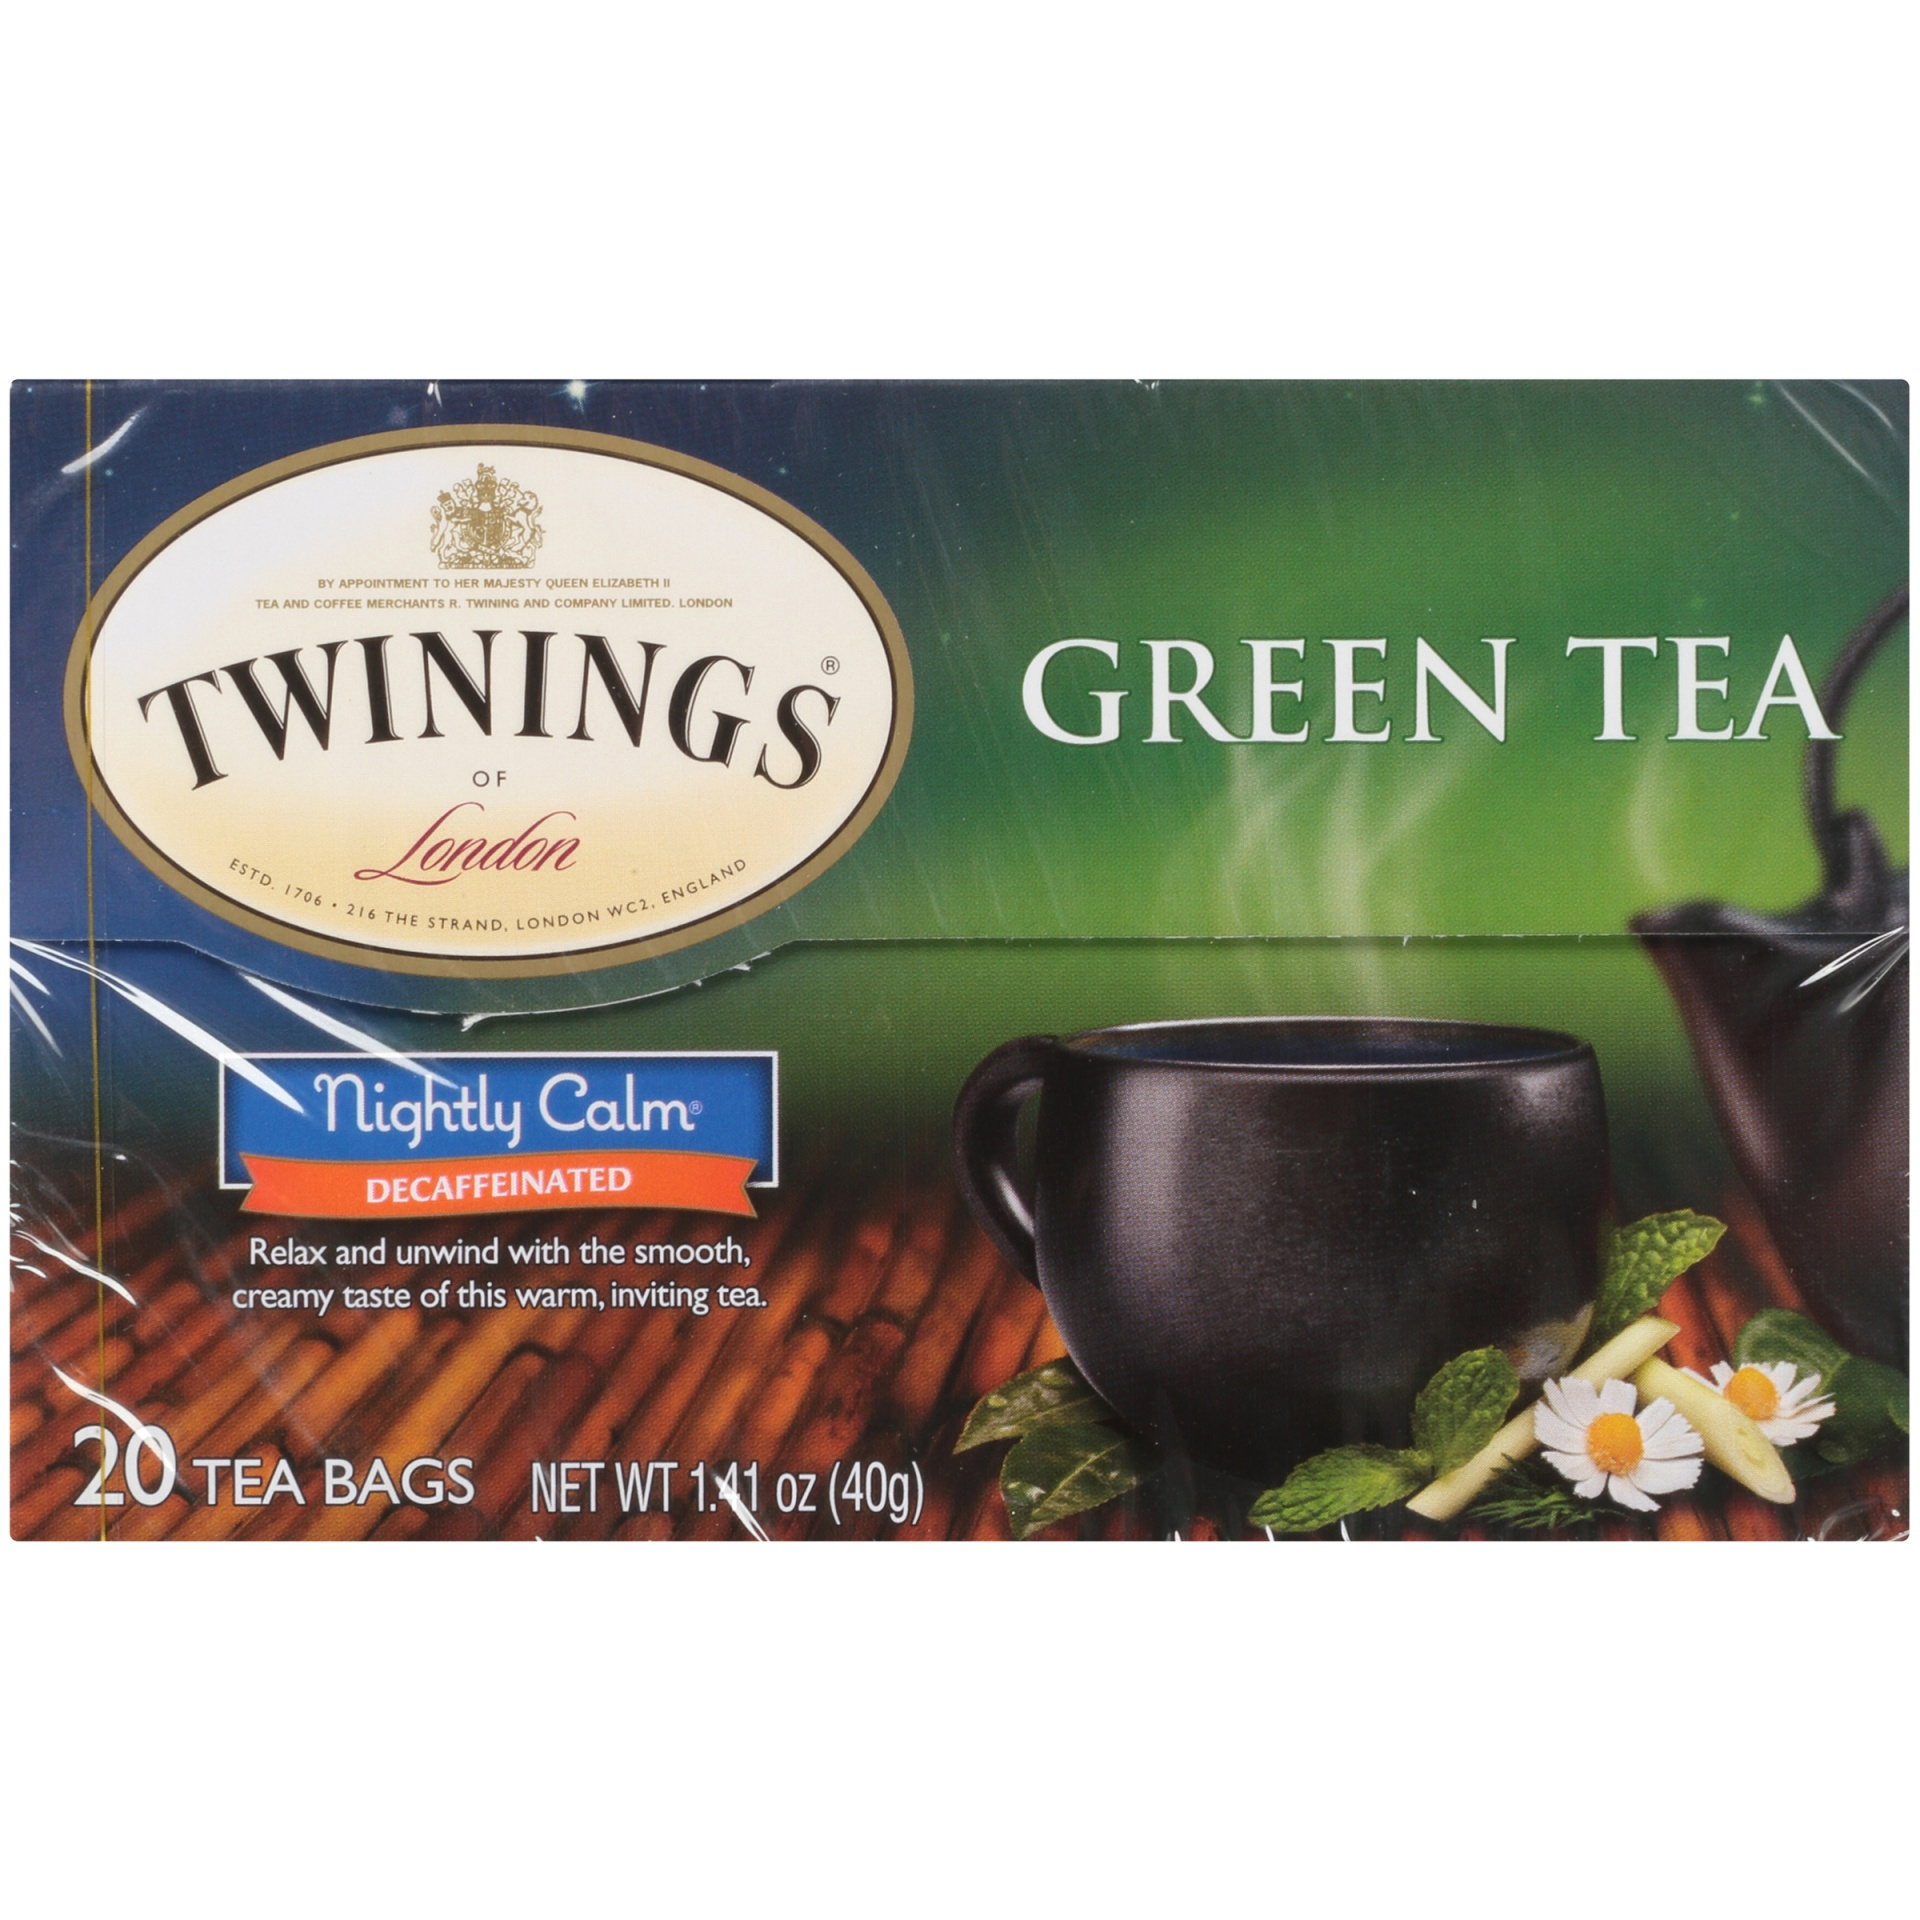 slide 6 of 7, Twinings of London Nightly Calm Green 20 Ct Tea Bags,